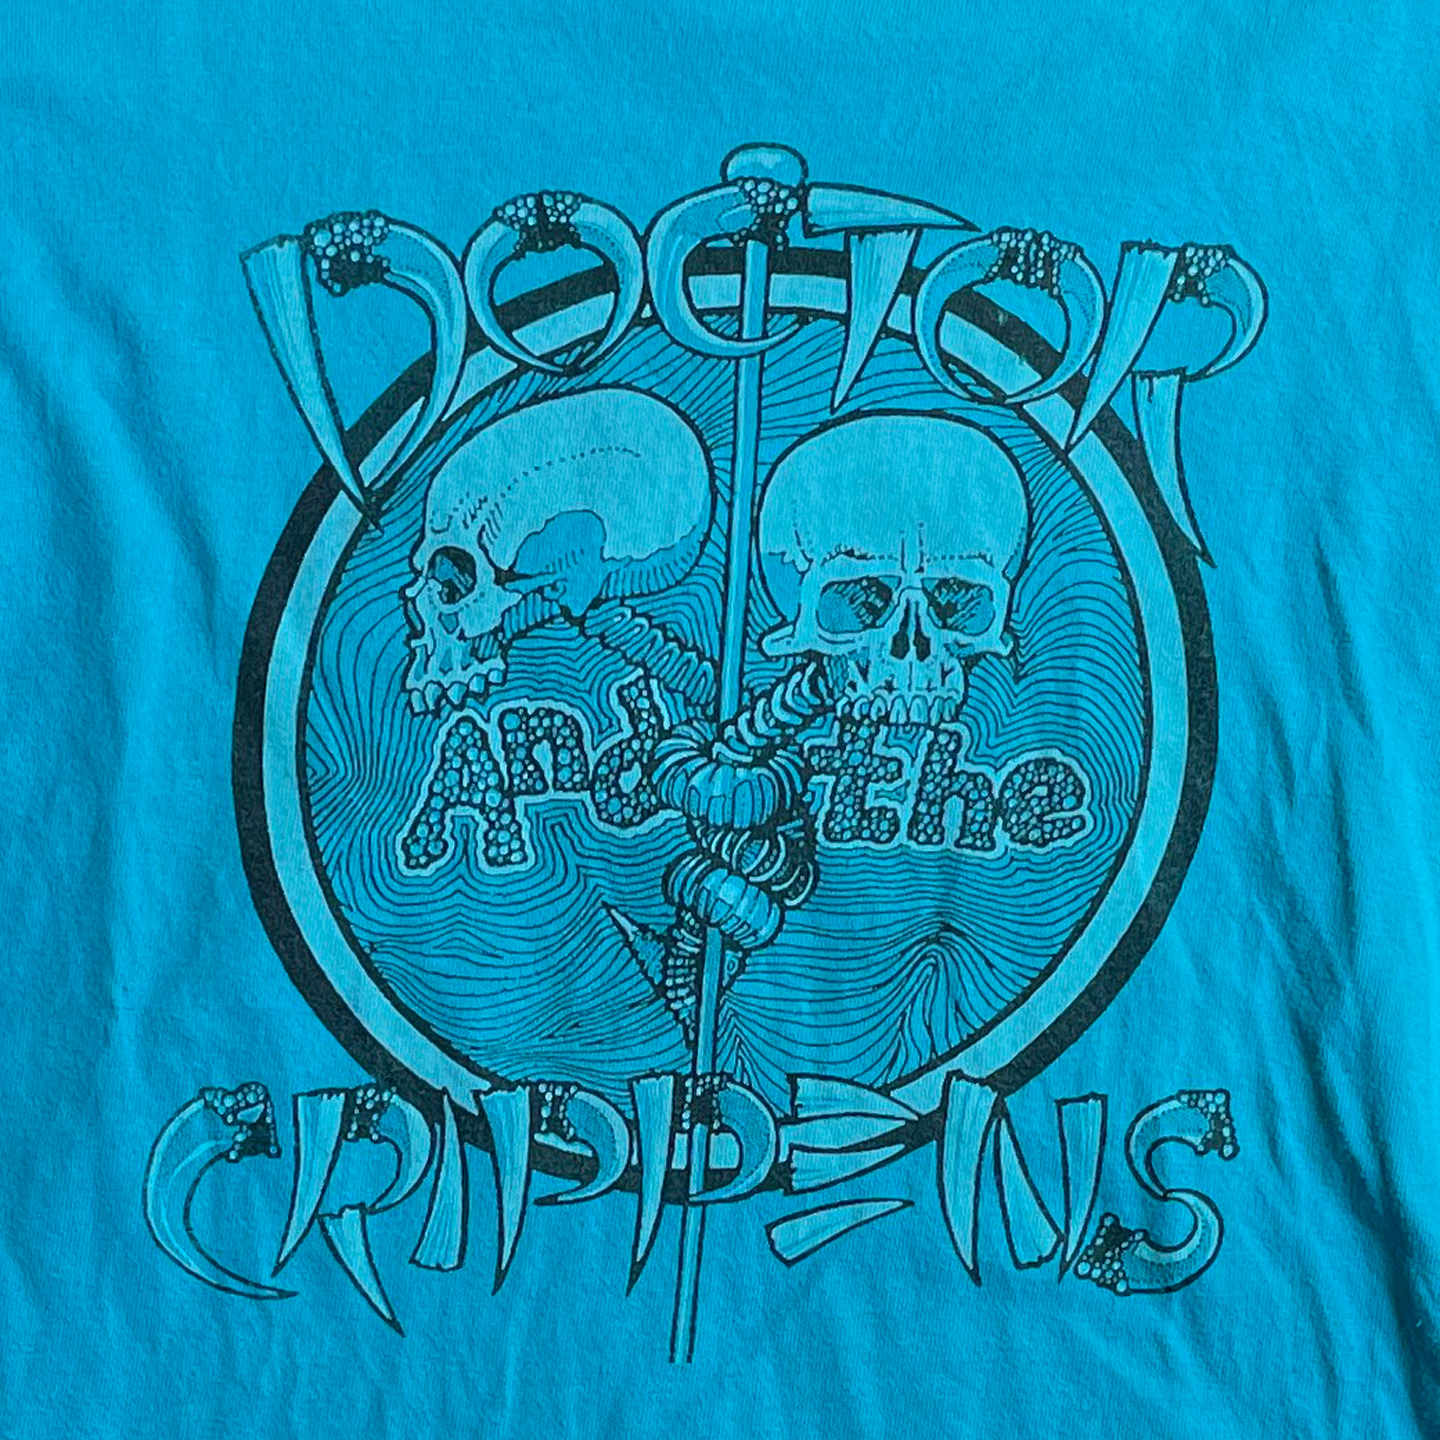 USED! DOCTOR AND THE CRIPPENS ロンT オフィシャル